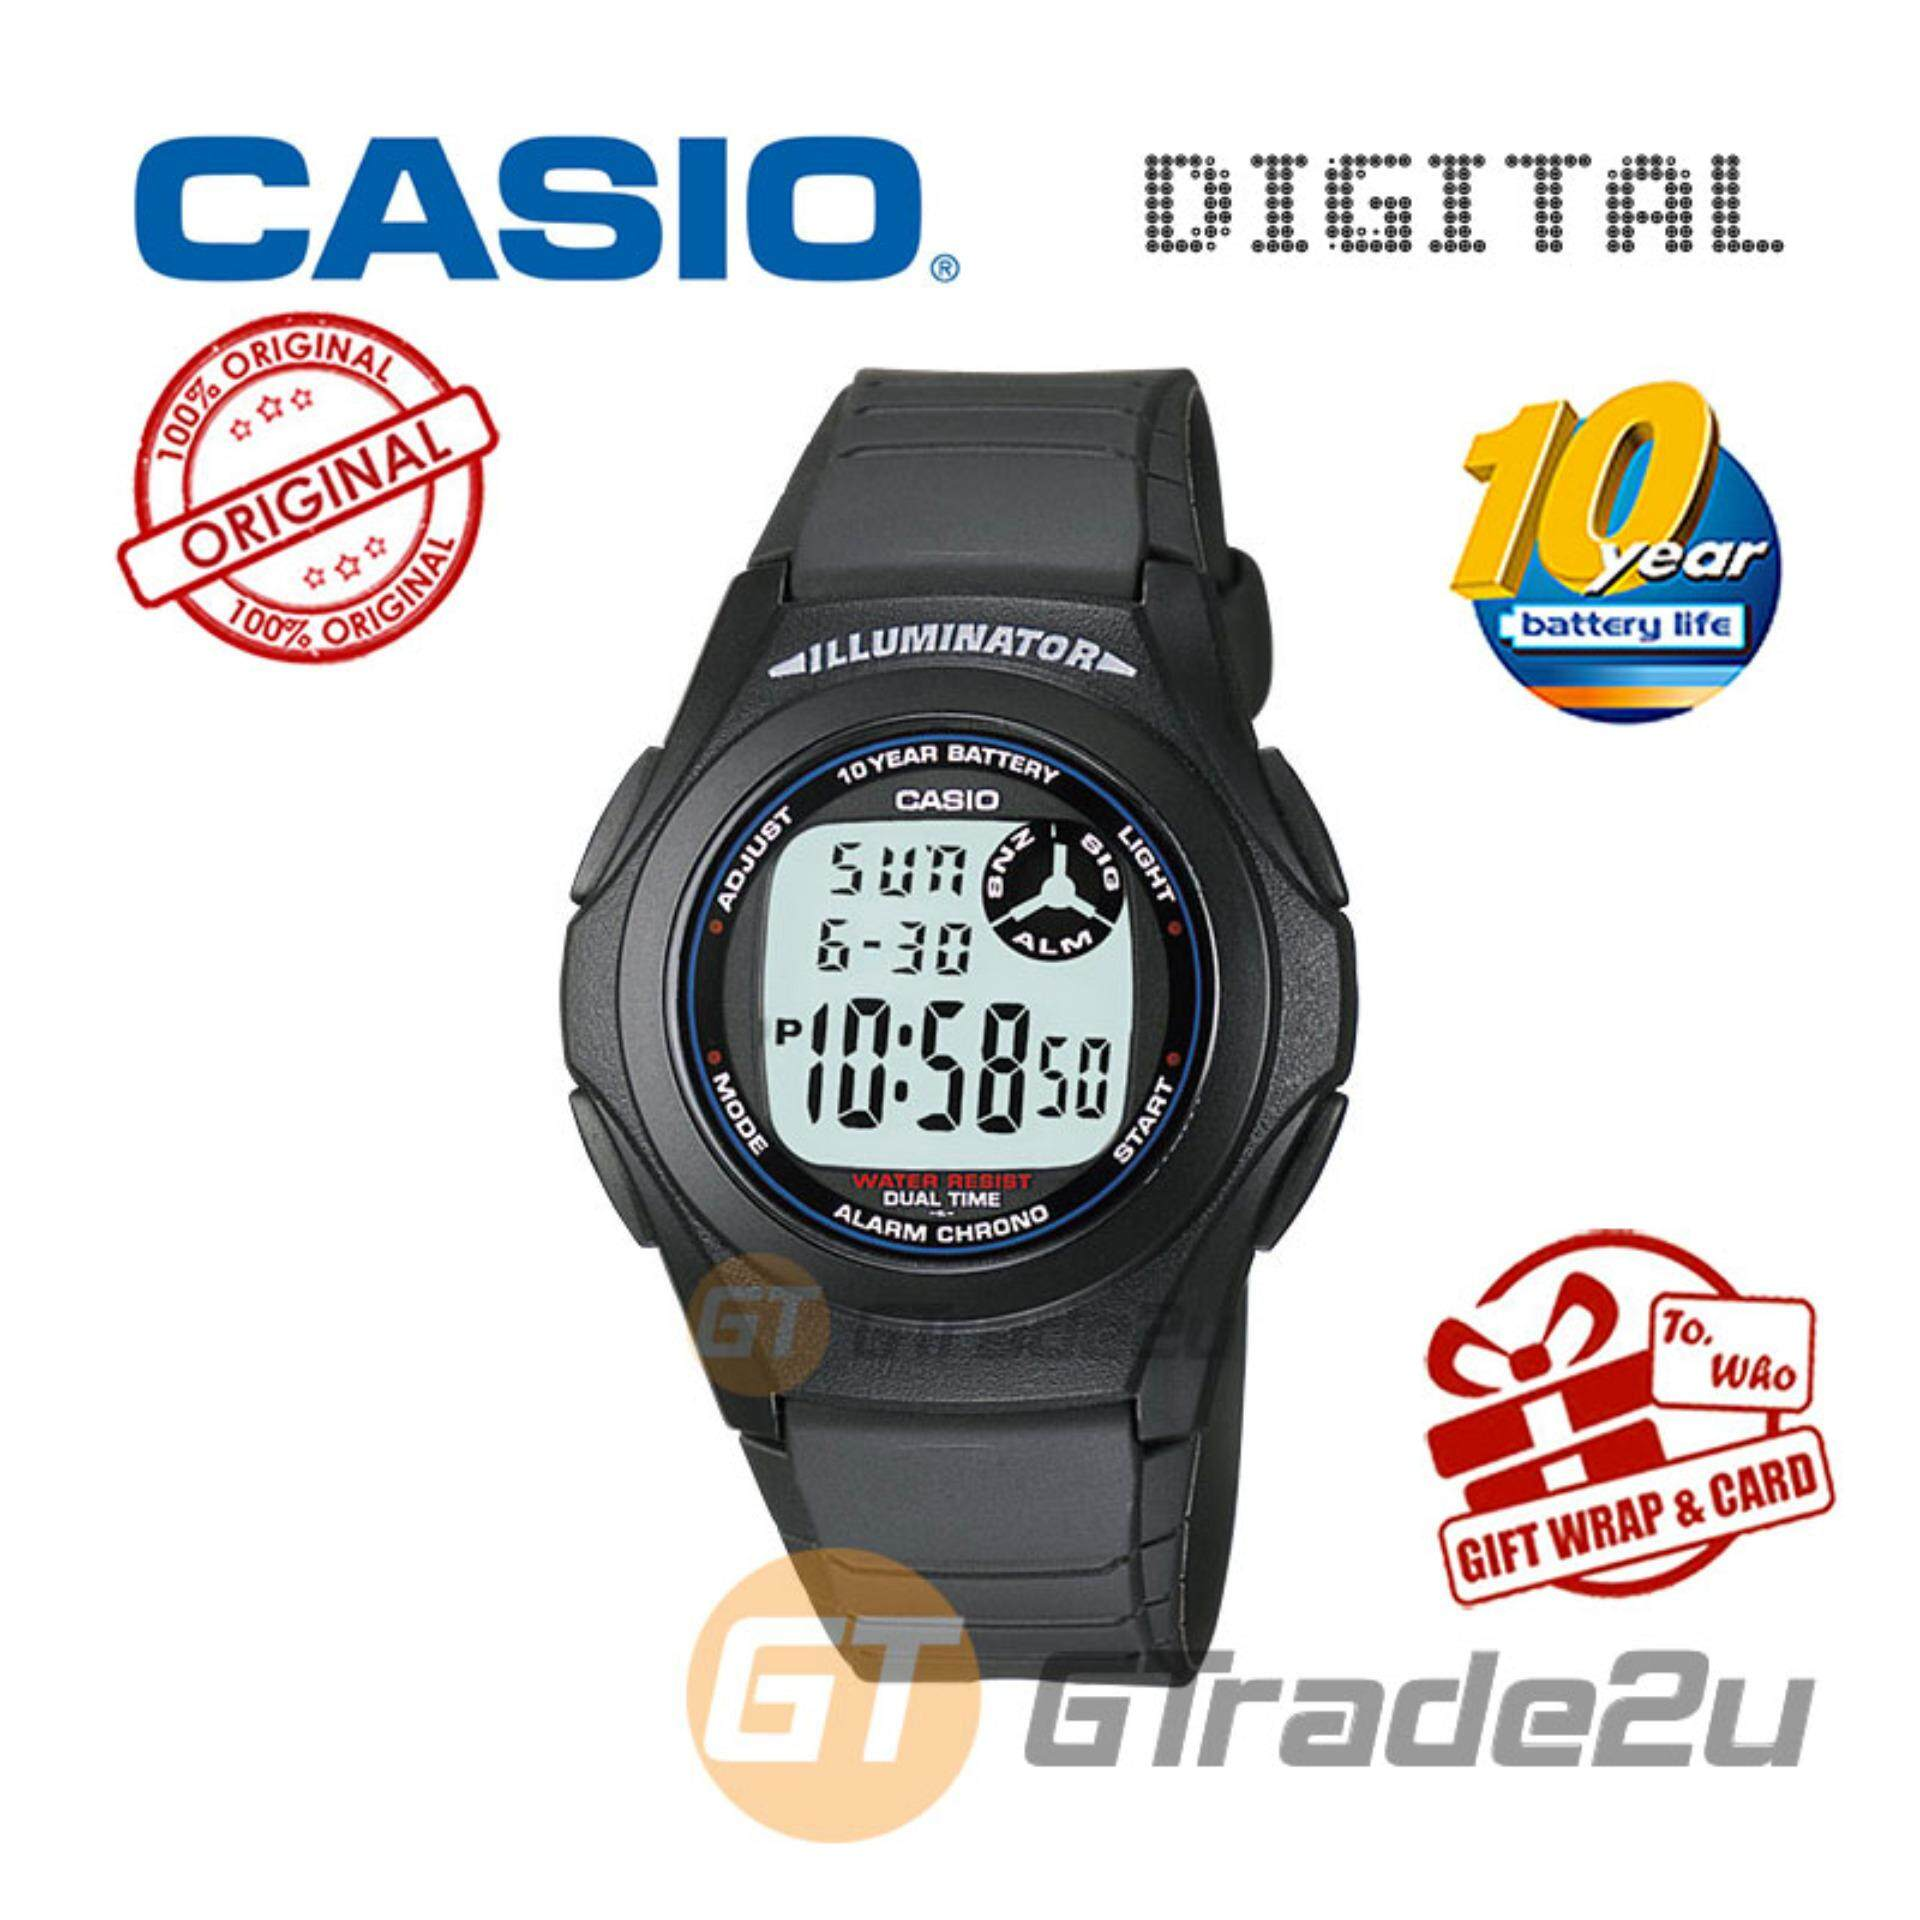 Casio Products for the Best Price in Malaysia 6bff8c1f14c2